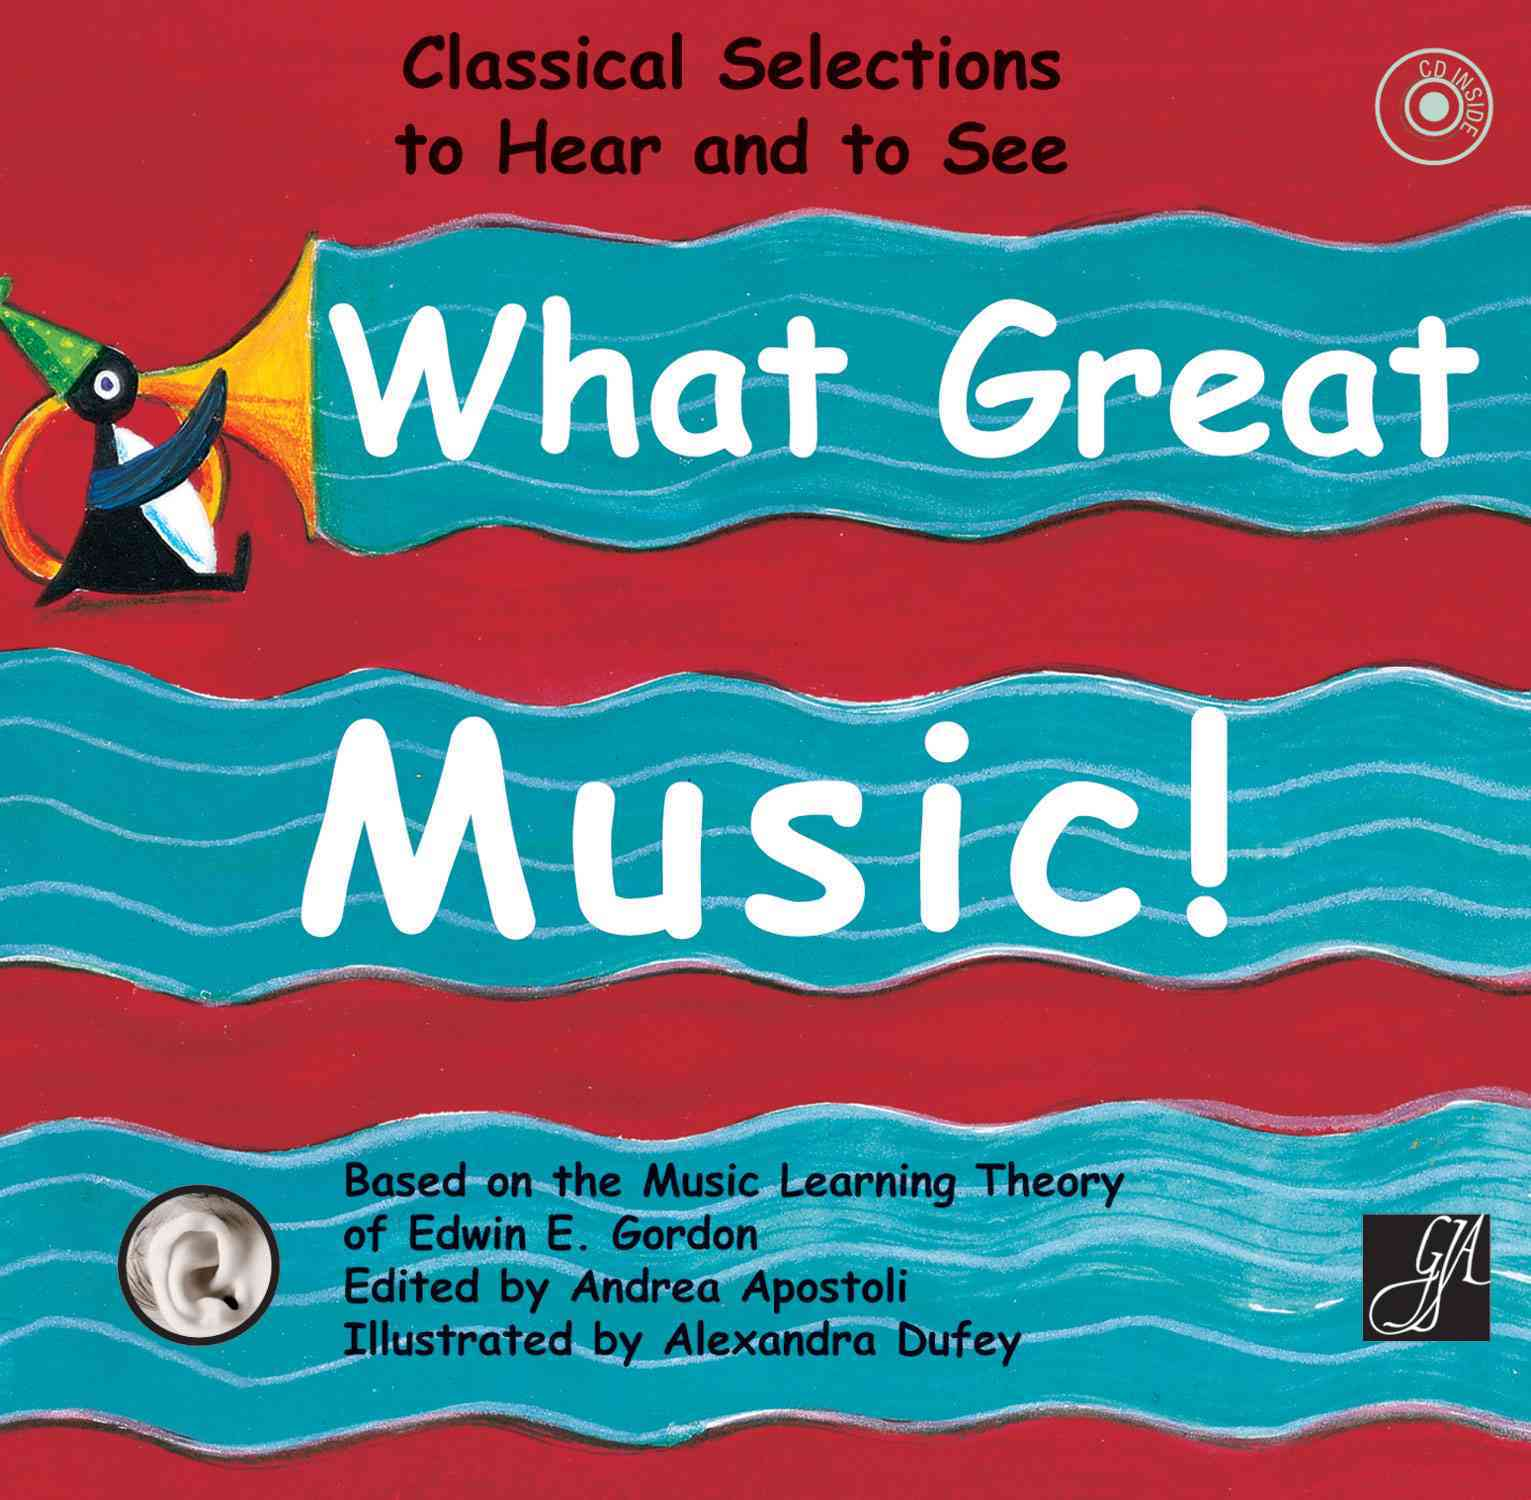 What Great Music!: Classical Selections to Hear and to See: For Children from 0 to 6 Years